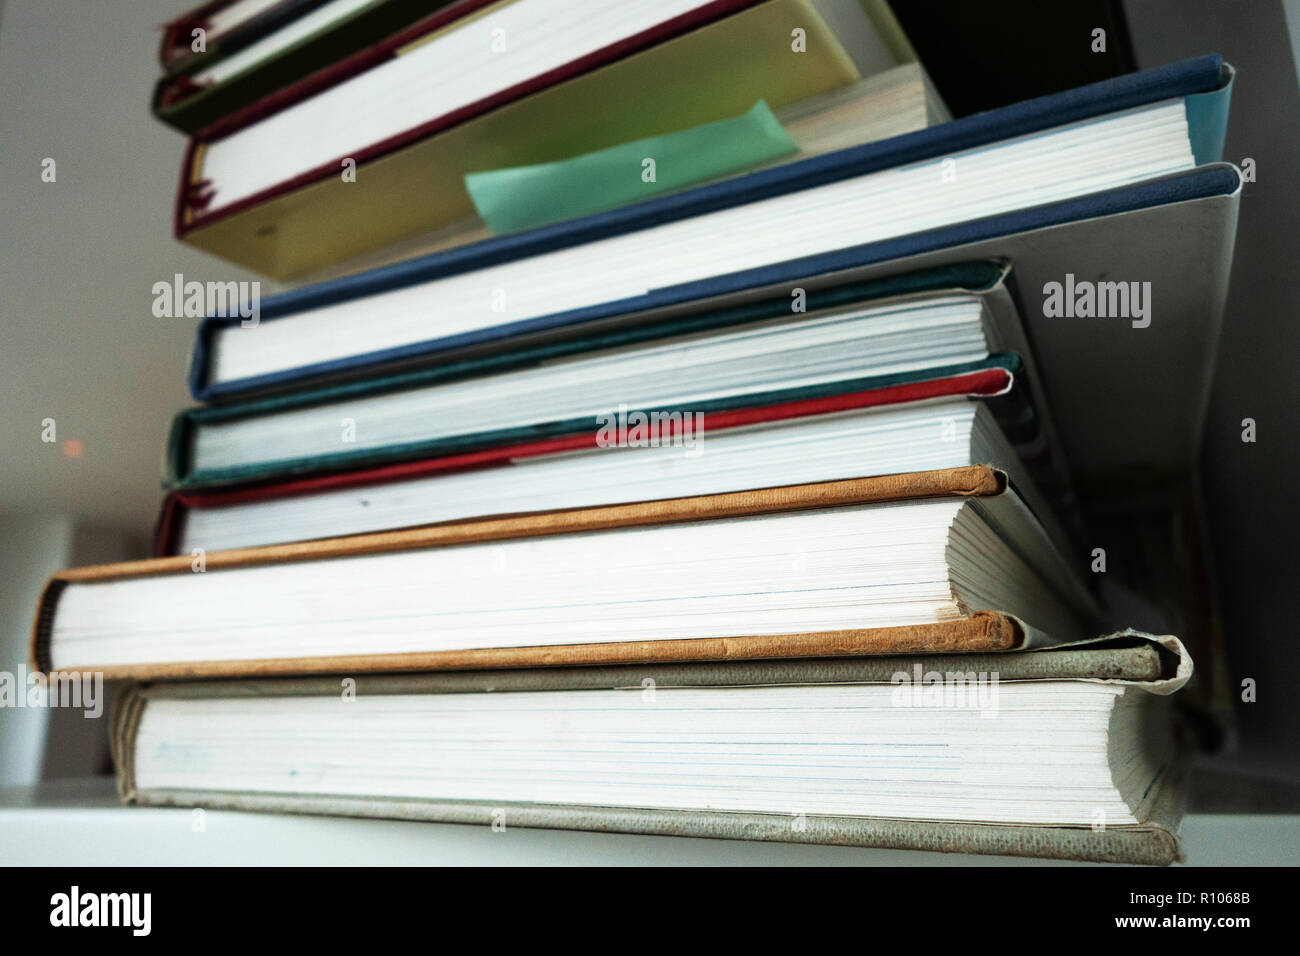 photograph of the sides of a pile of hardbacked books on a white shelf, no copy - Stock Image